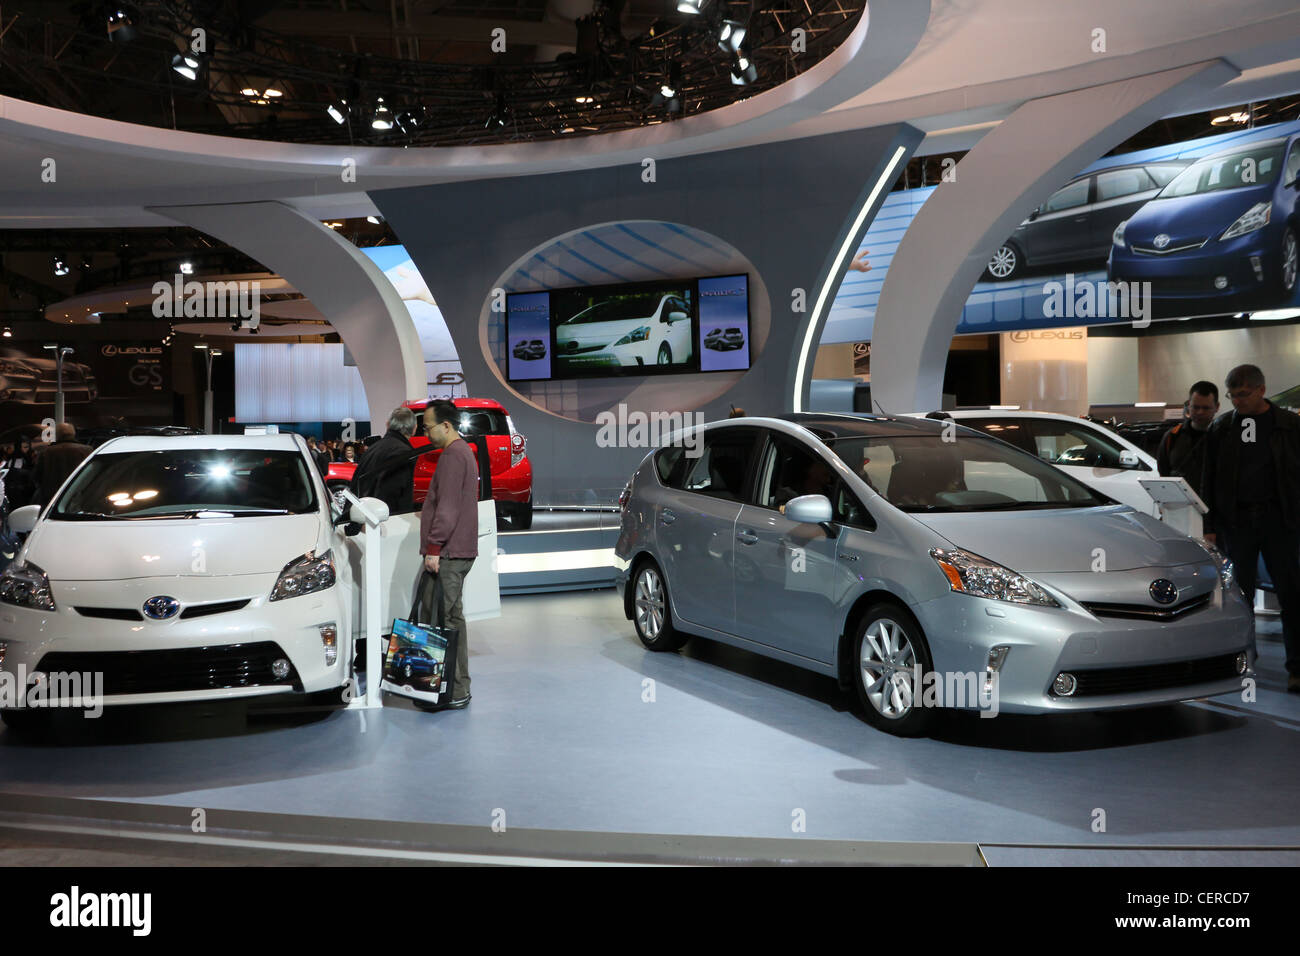 Toyota Prius hybride électrique voiture voitures showroom Photo Stock